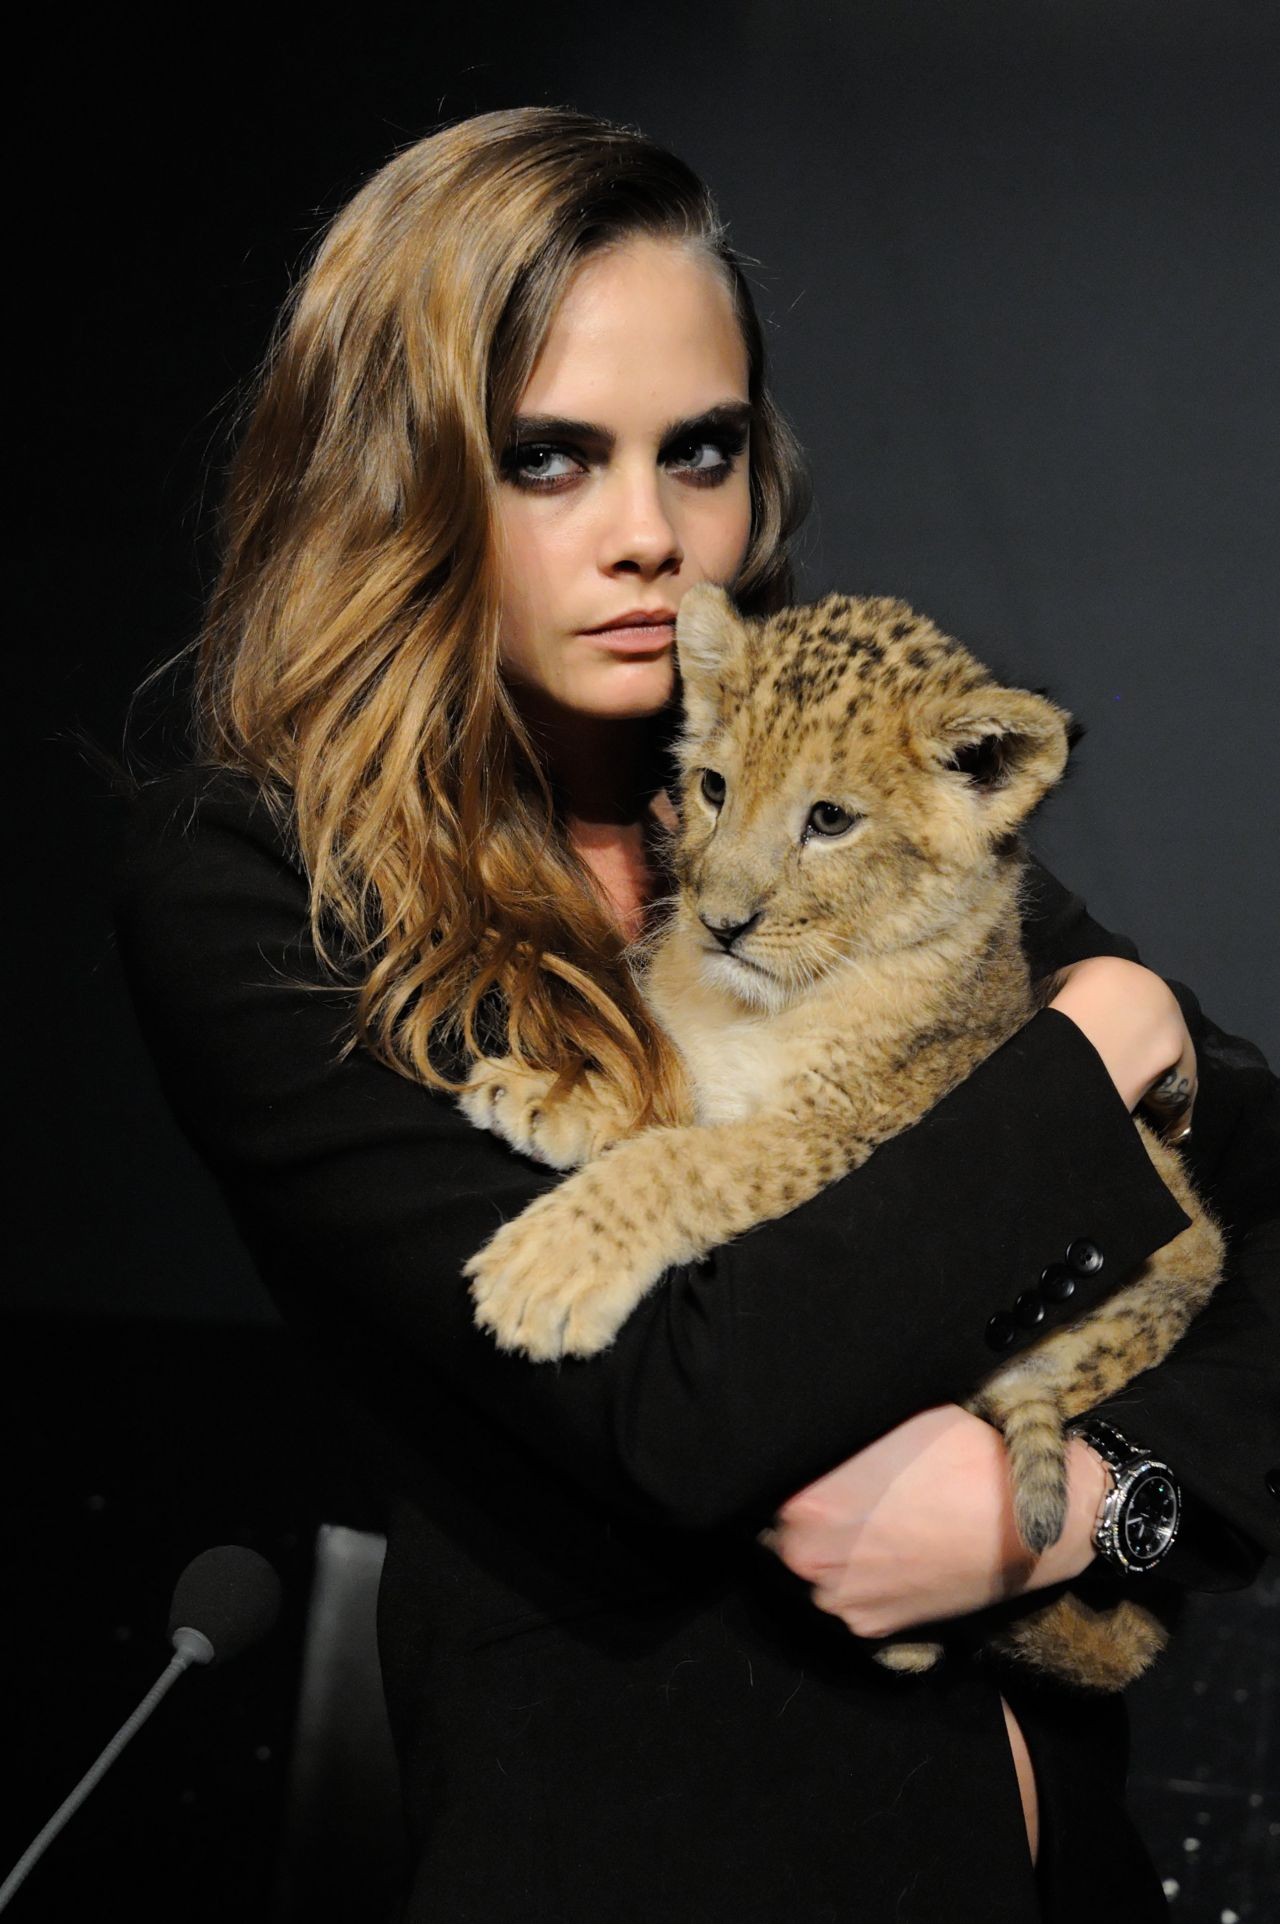 cara-delevingne-the-new-face-of-tag-heuer-press-conference-in-paris-france_10